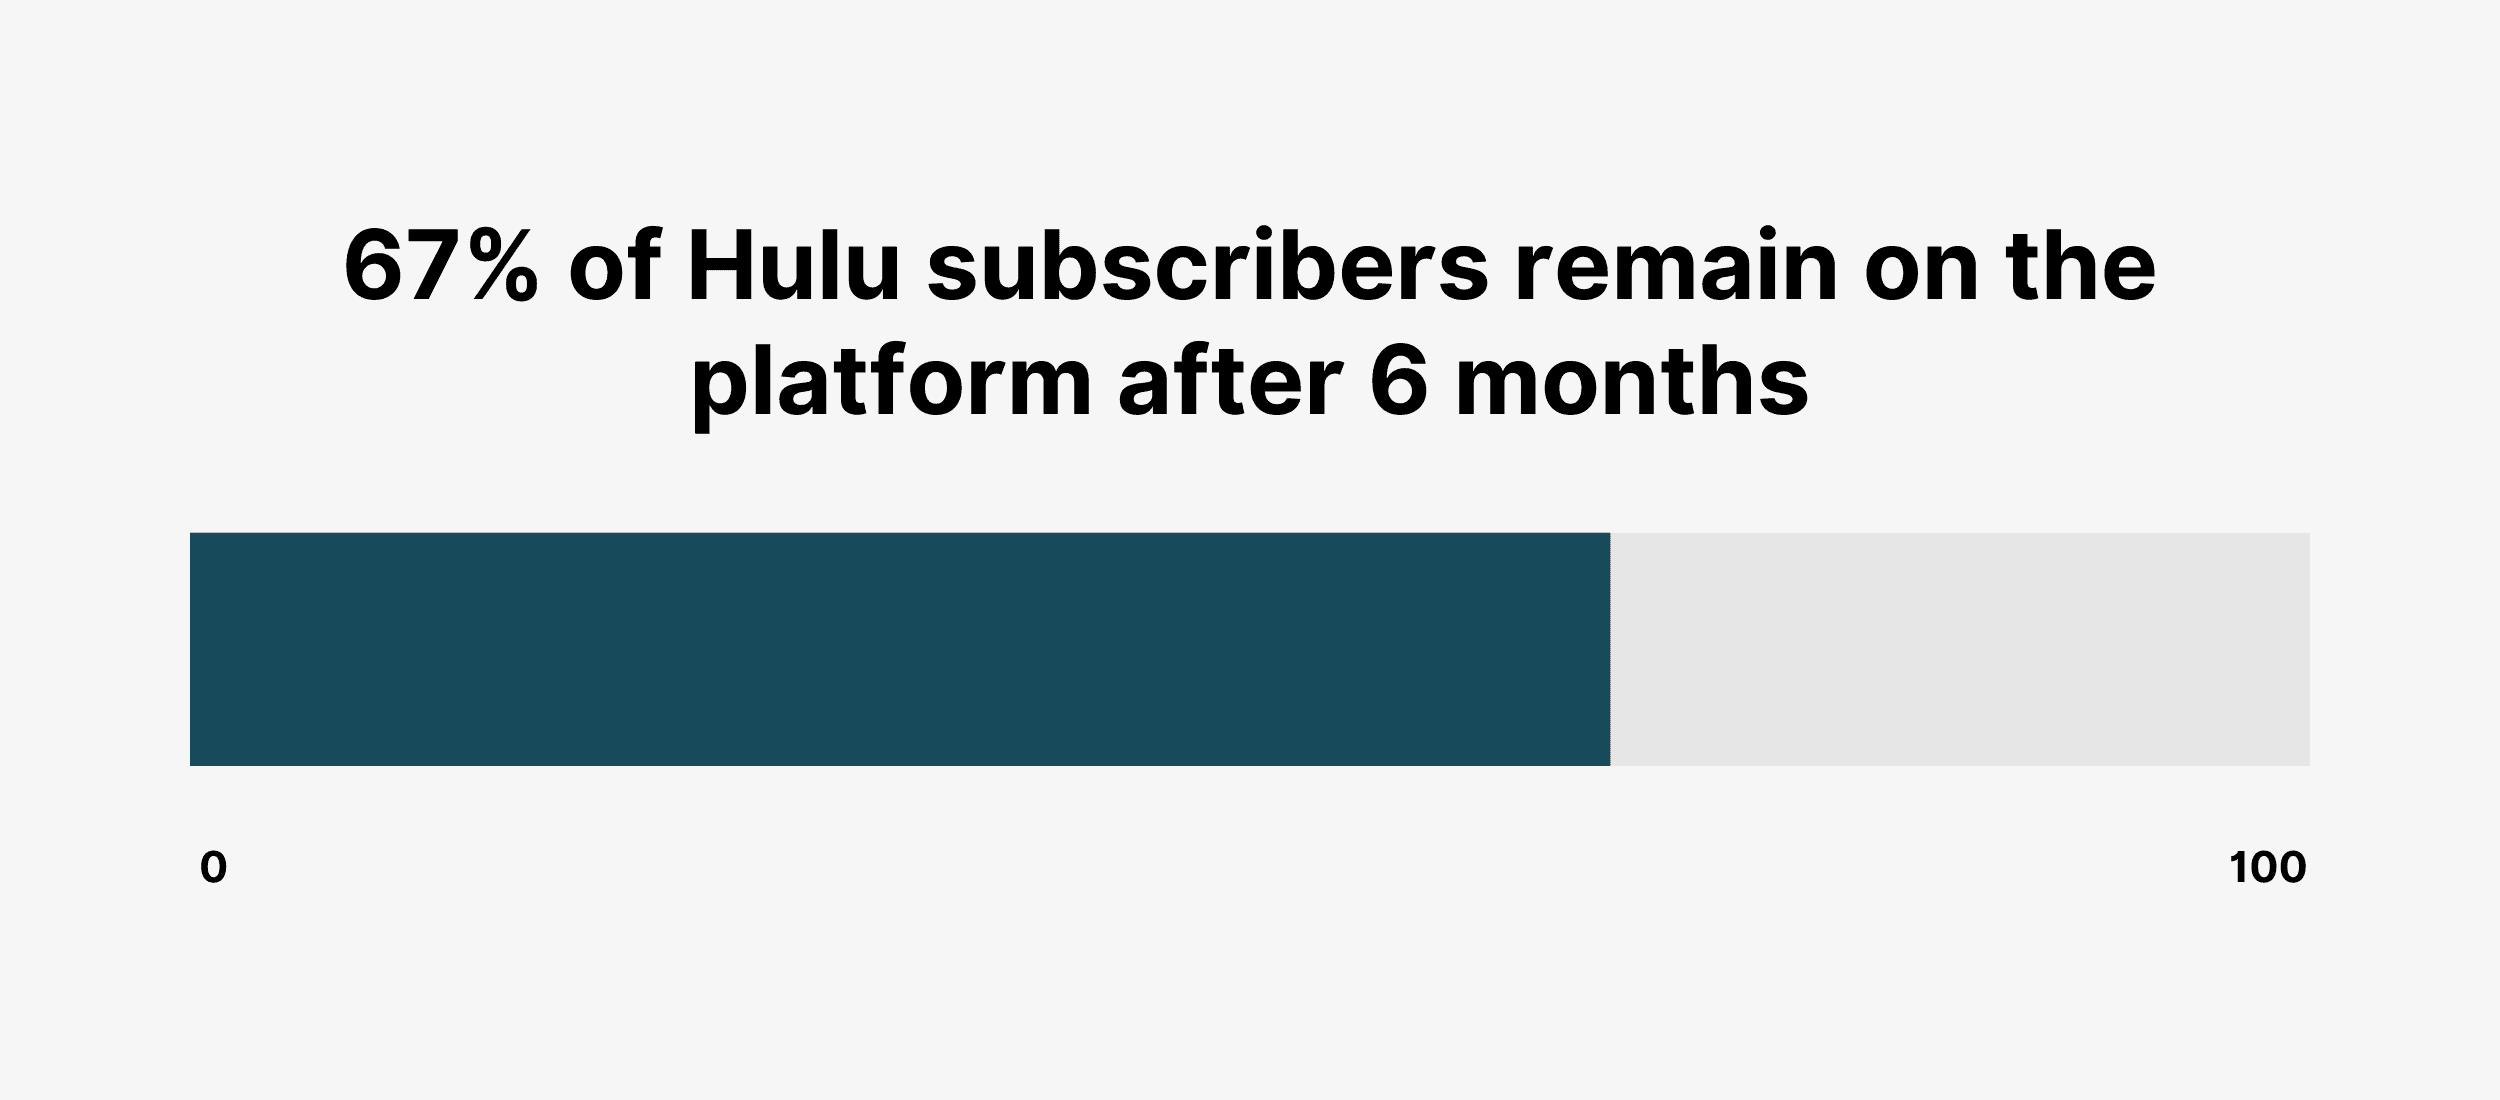 67% of Hulu subscribers remain on the platform after 6 months